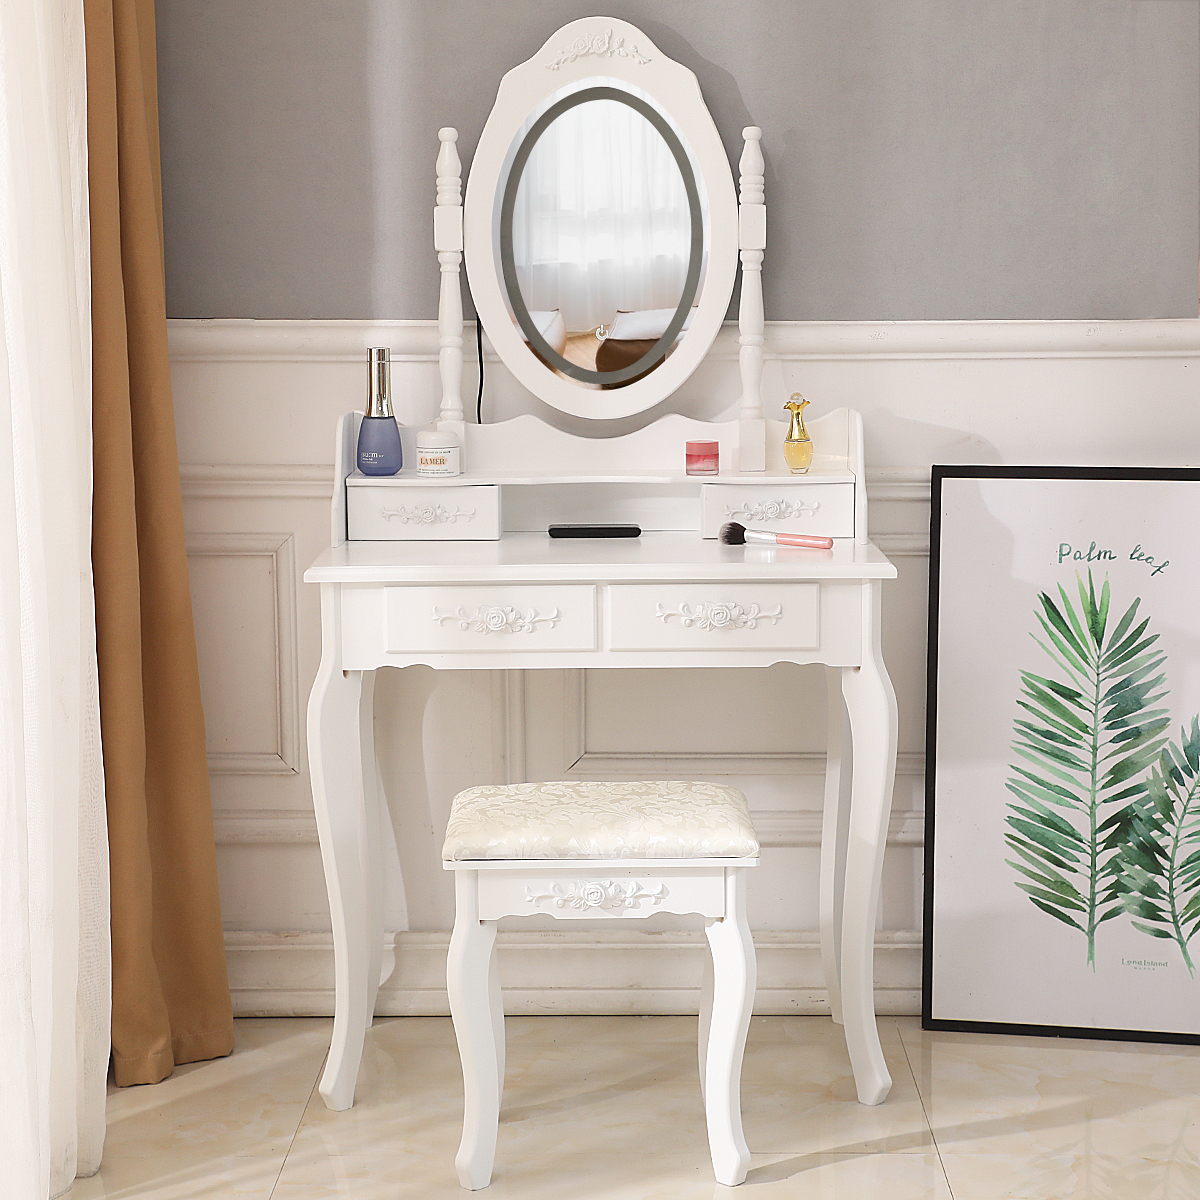 Details about White Makeup Vanity Table Set with Lights Led Mirror and 4  Drawers Dressing Desk